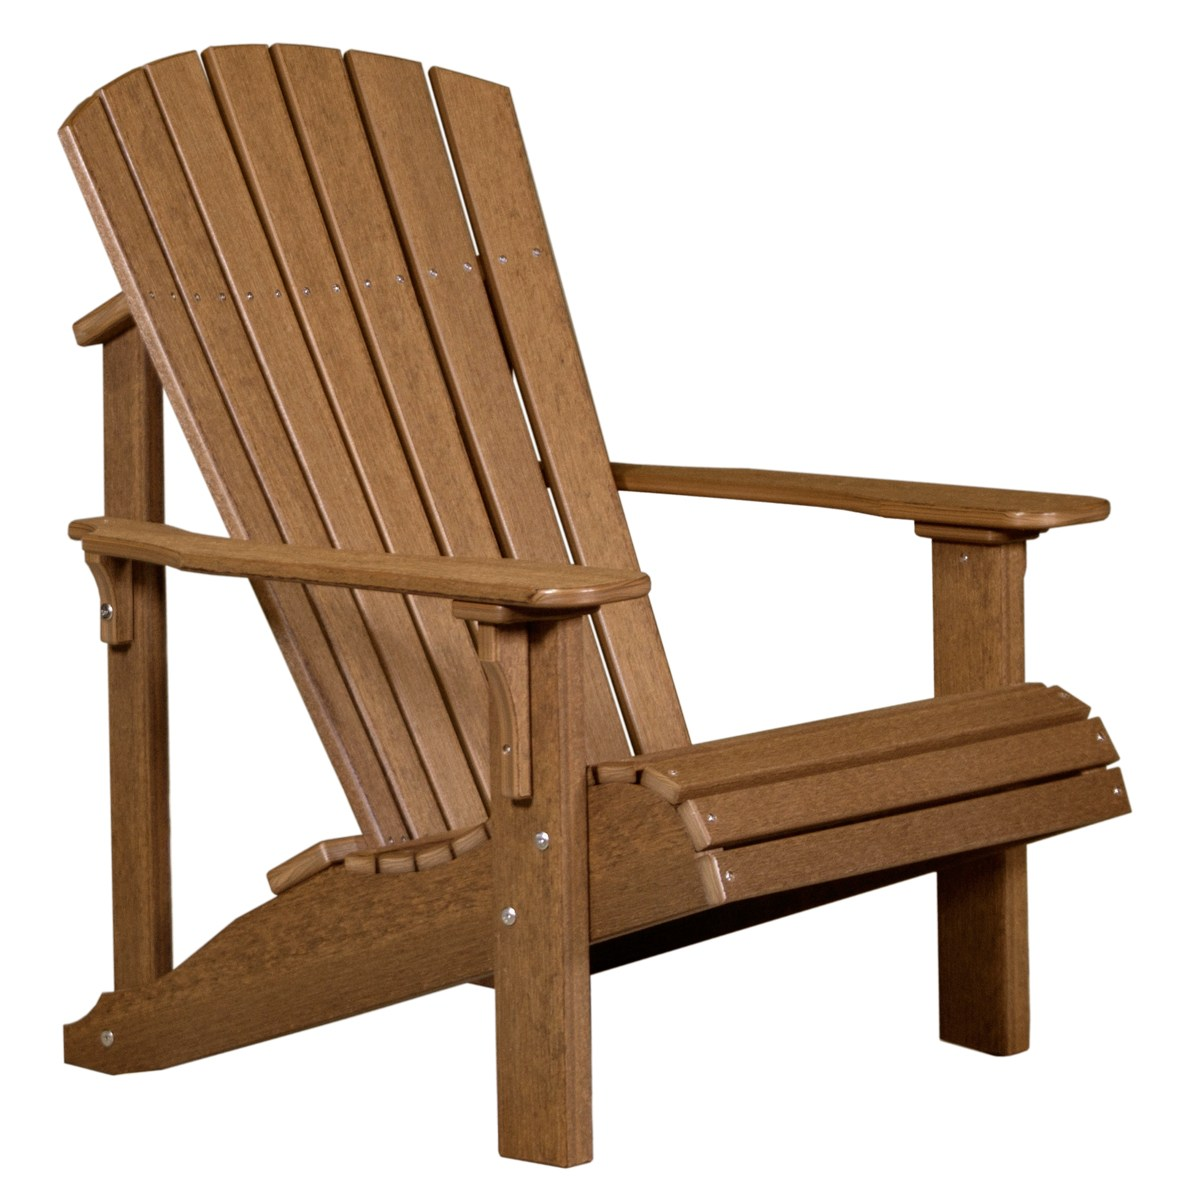 Deluxe Adirondack Chair - Antique Mahogany